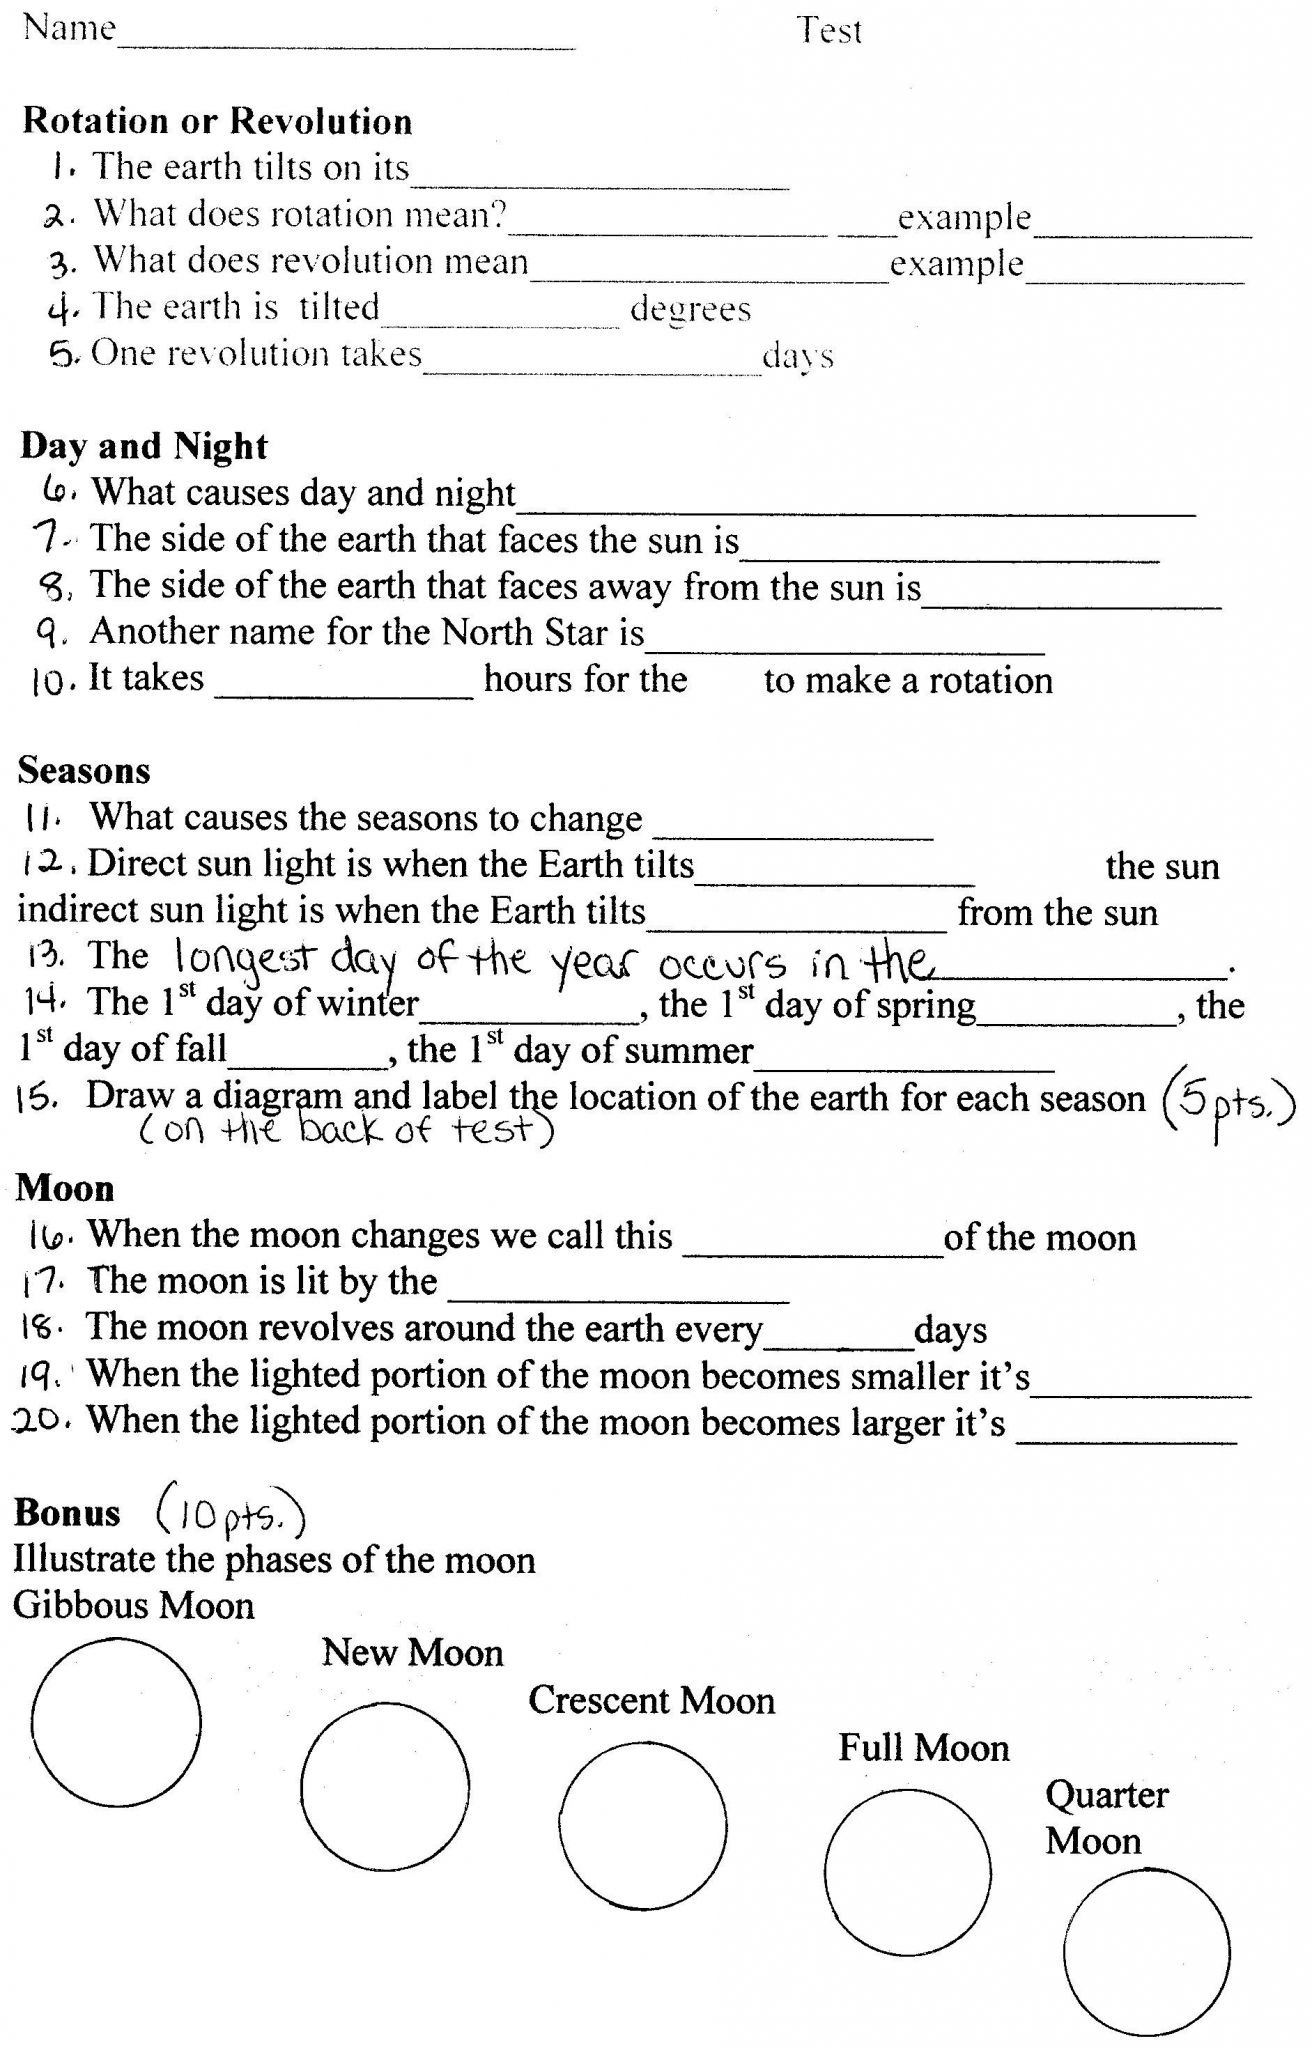 worksheets science earth worksheet grade space astronomy 6th answers middle rotation printables 4th revolution system exam seasons layers moon cycle